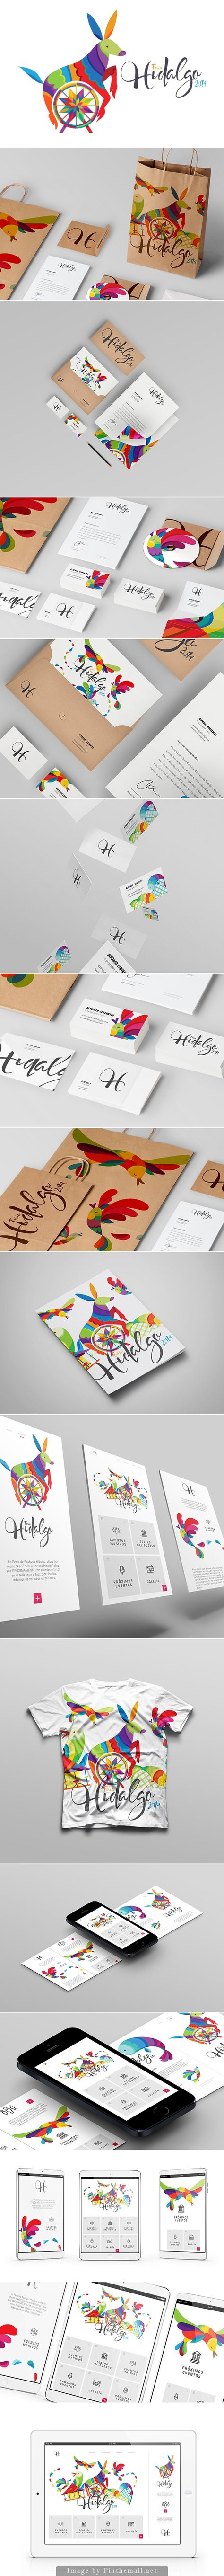 188 best beautiful business cards images on pinterest